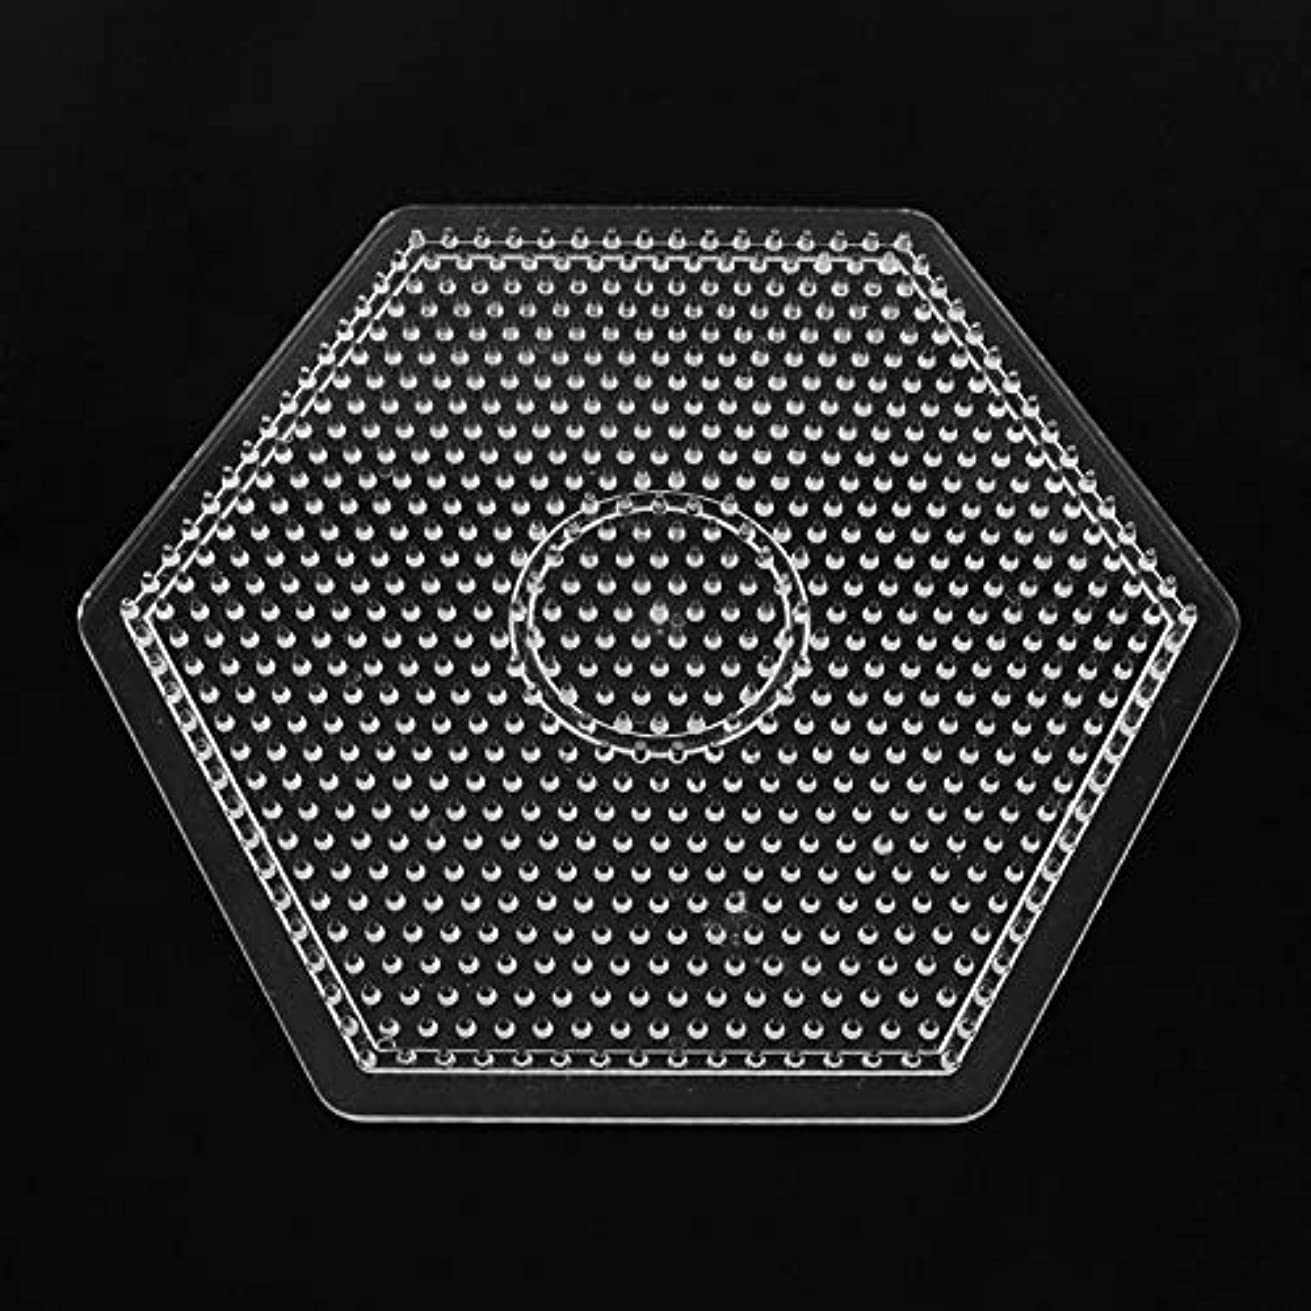 PH PandaHall 10 Pcs 5mm Hexagon Fuse Beads Boards Clear Plastic Perler Bead Pegboards for Kids Craft Beads